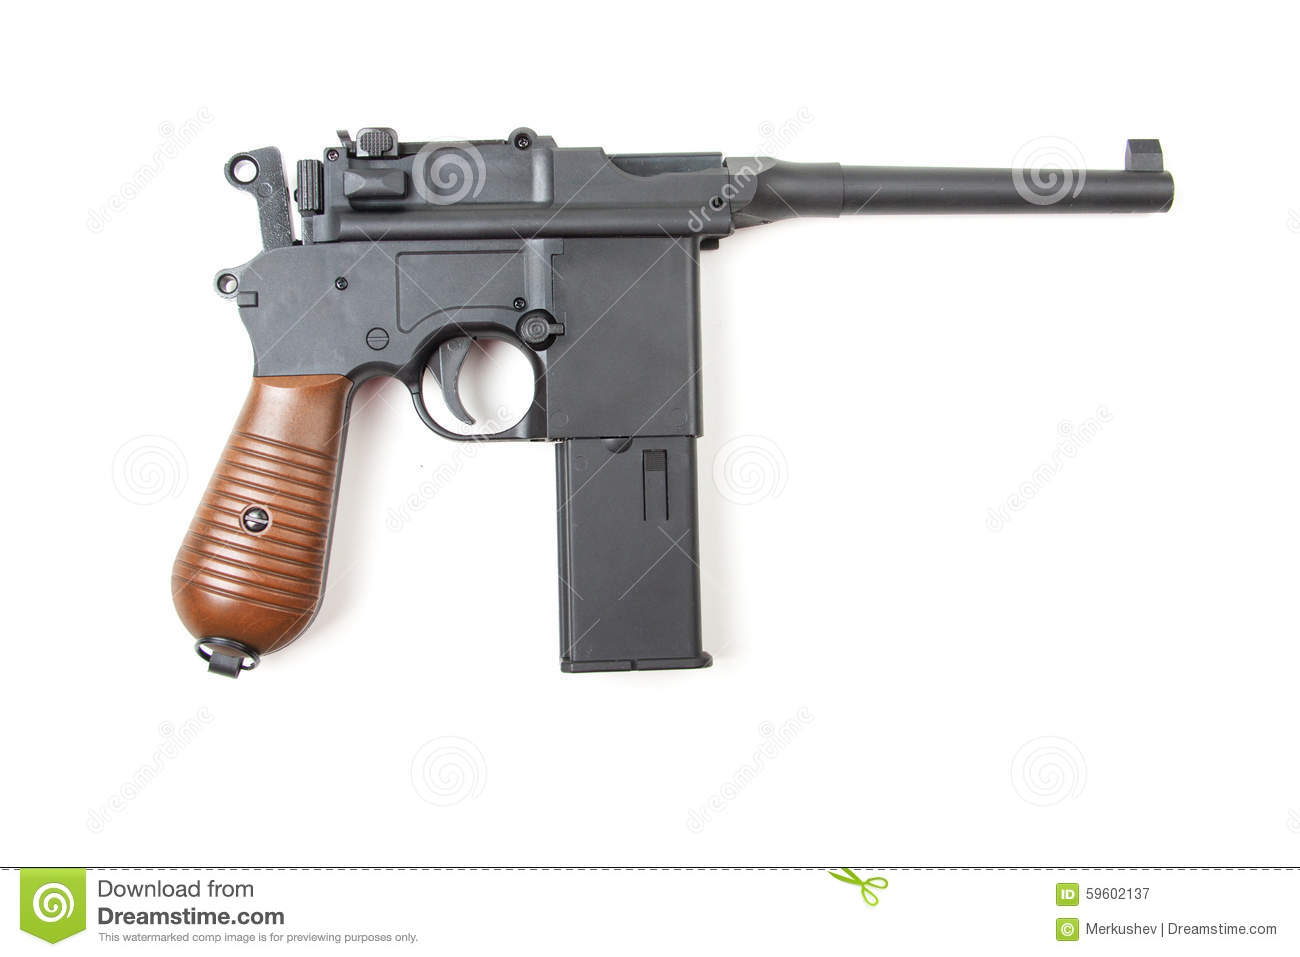 gun white background - photo #10